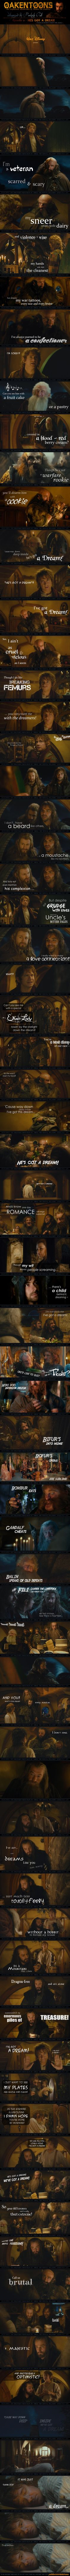 HOBBIT TANGLED CROSSOVER! BEST THING SINCE KITTENS <------- WHOEVER DID THIS IS A GENIUS AND I LOVE YOU